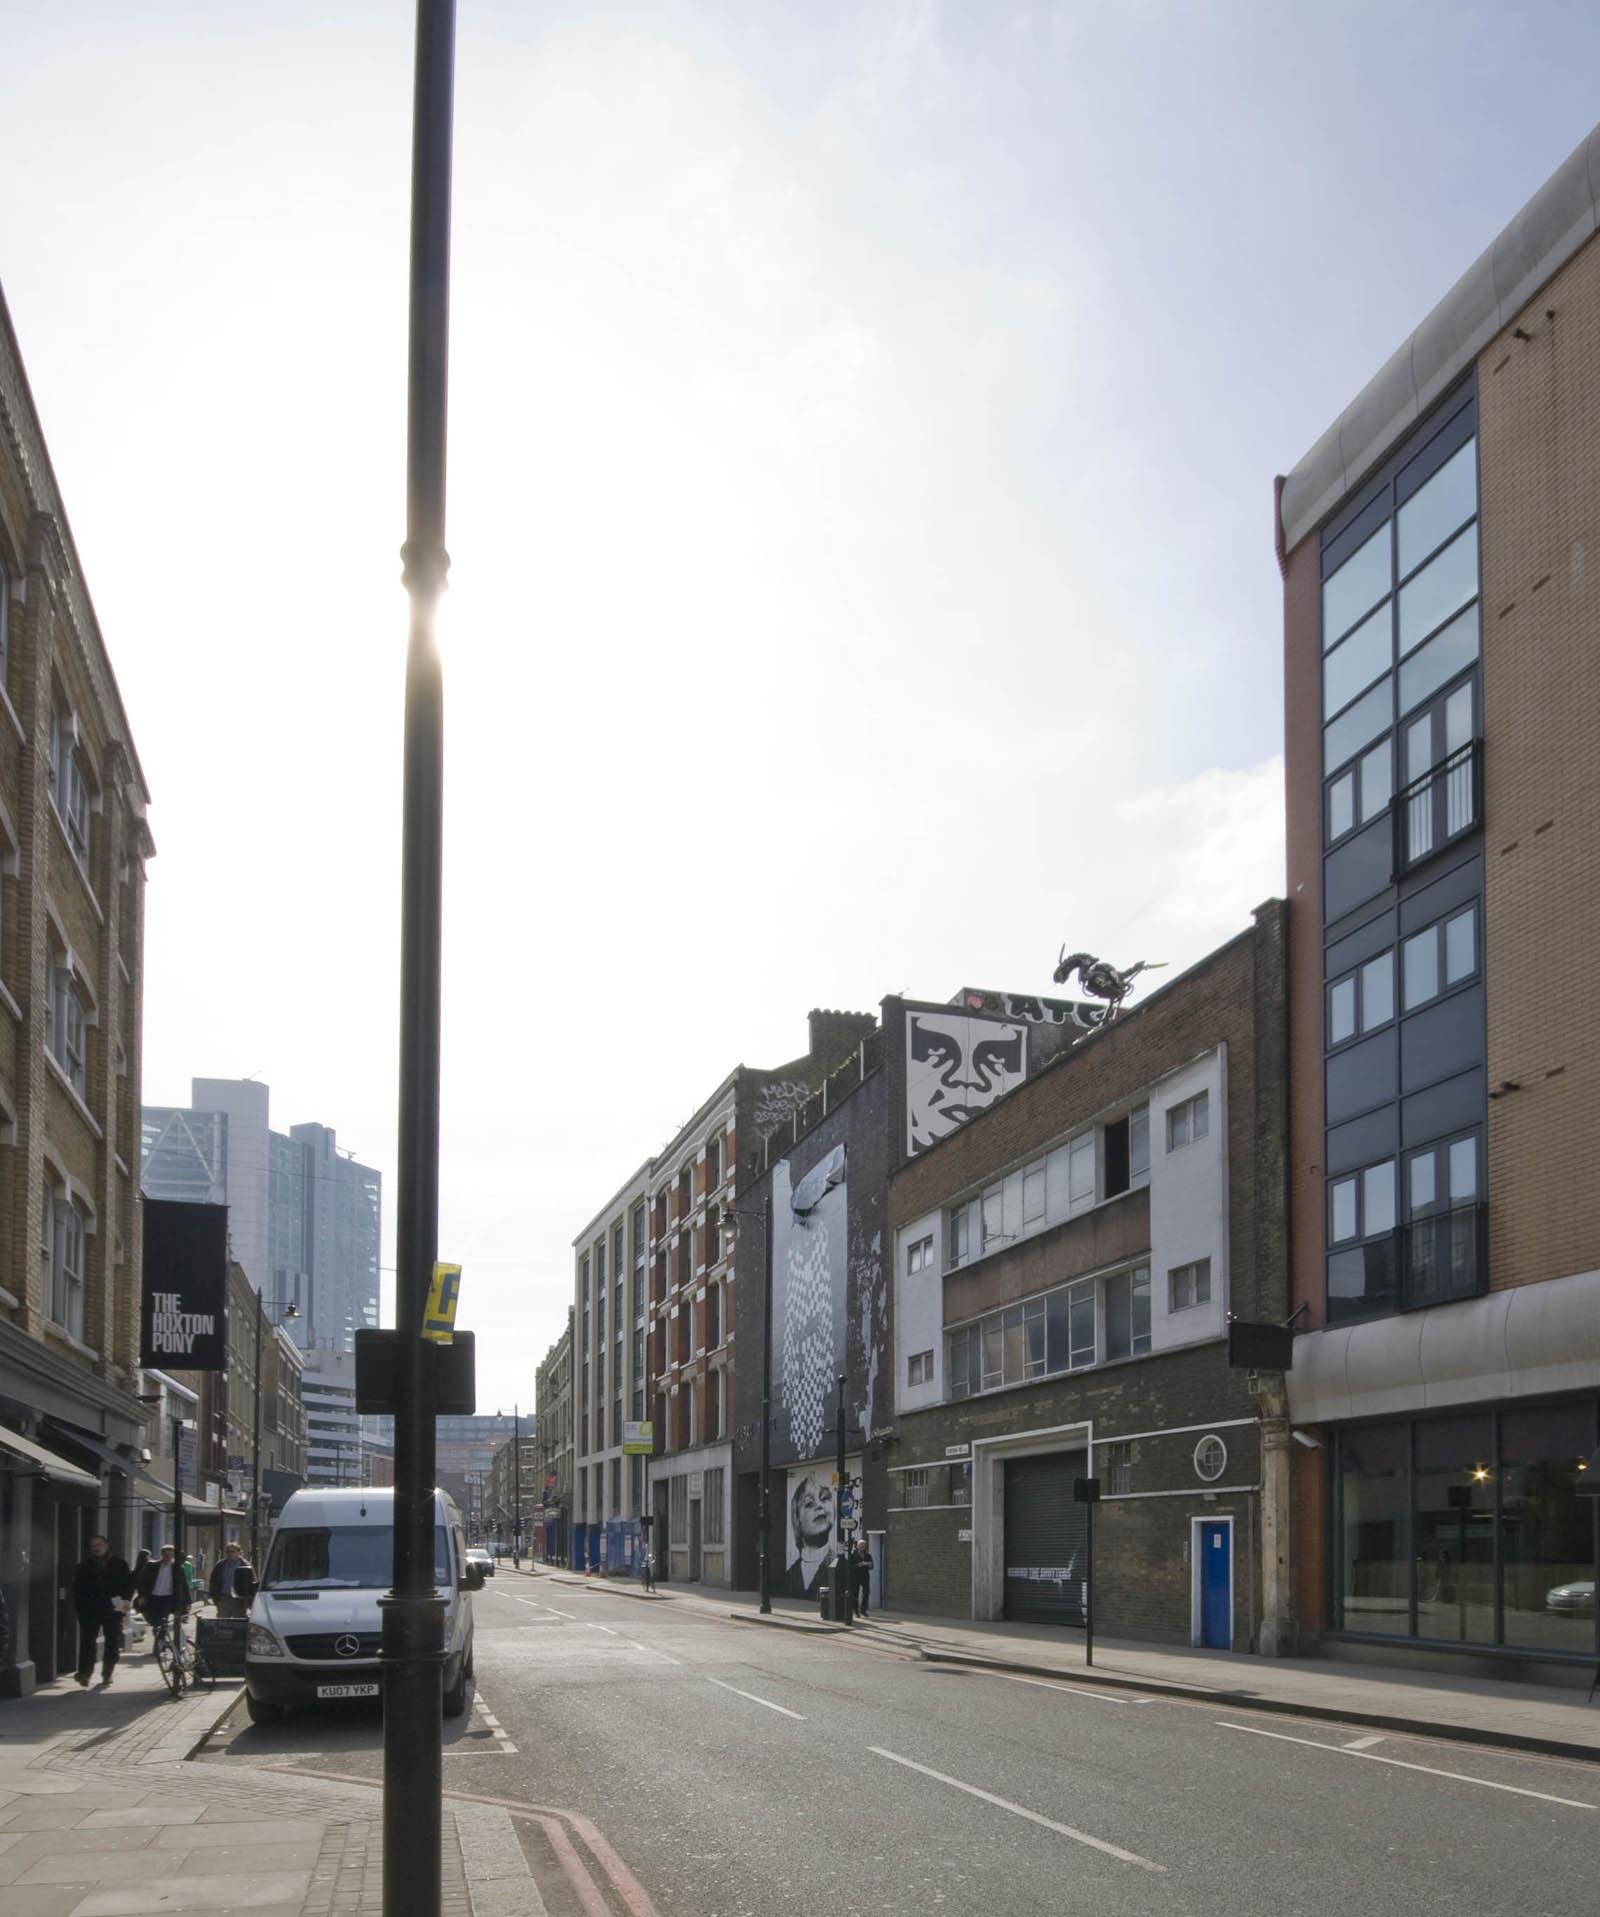 Curtain Road 5